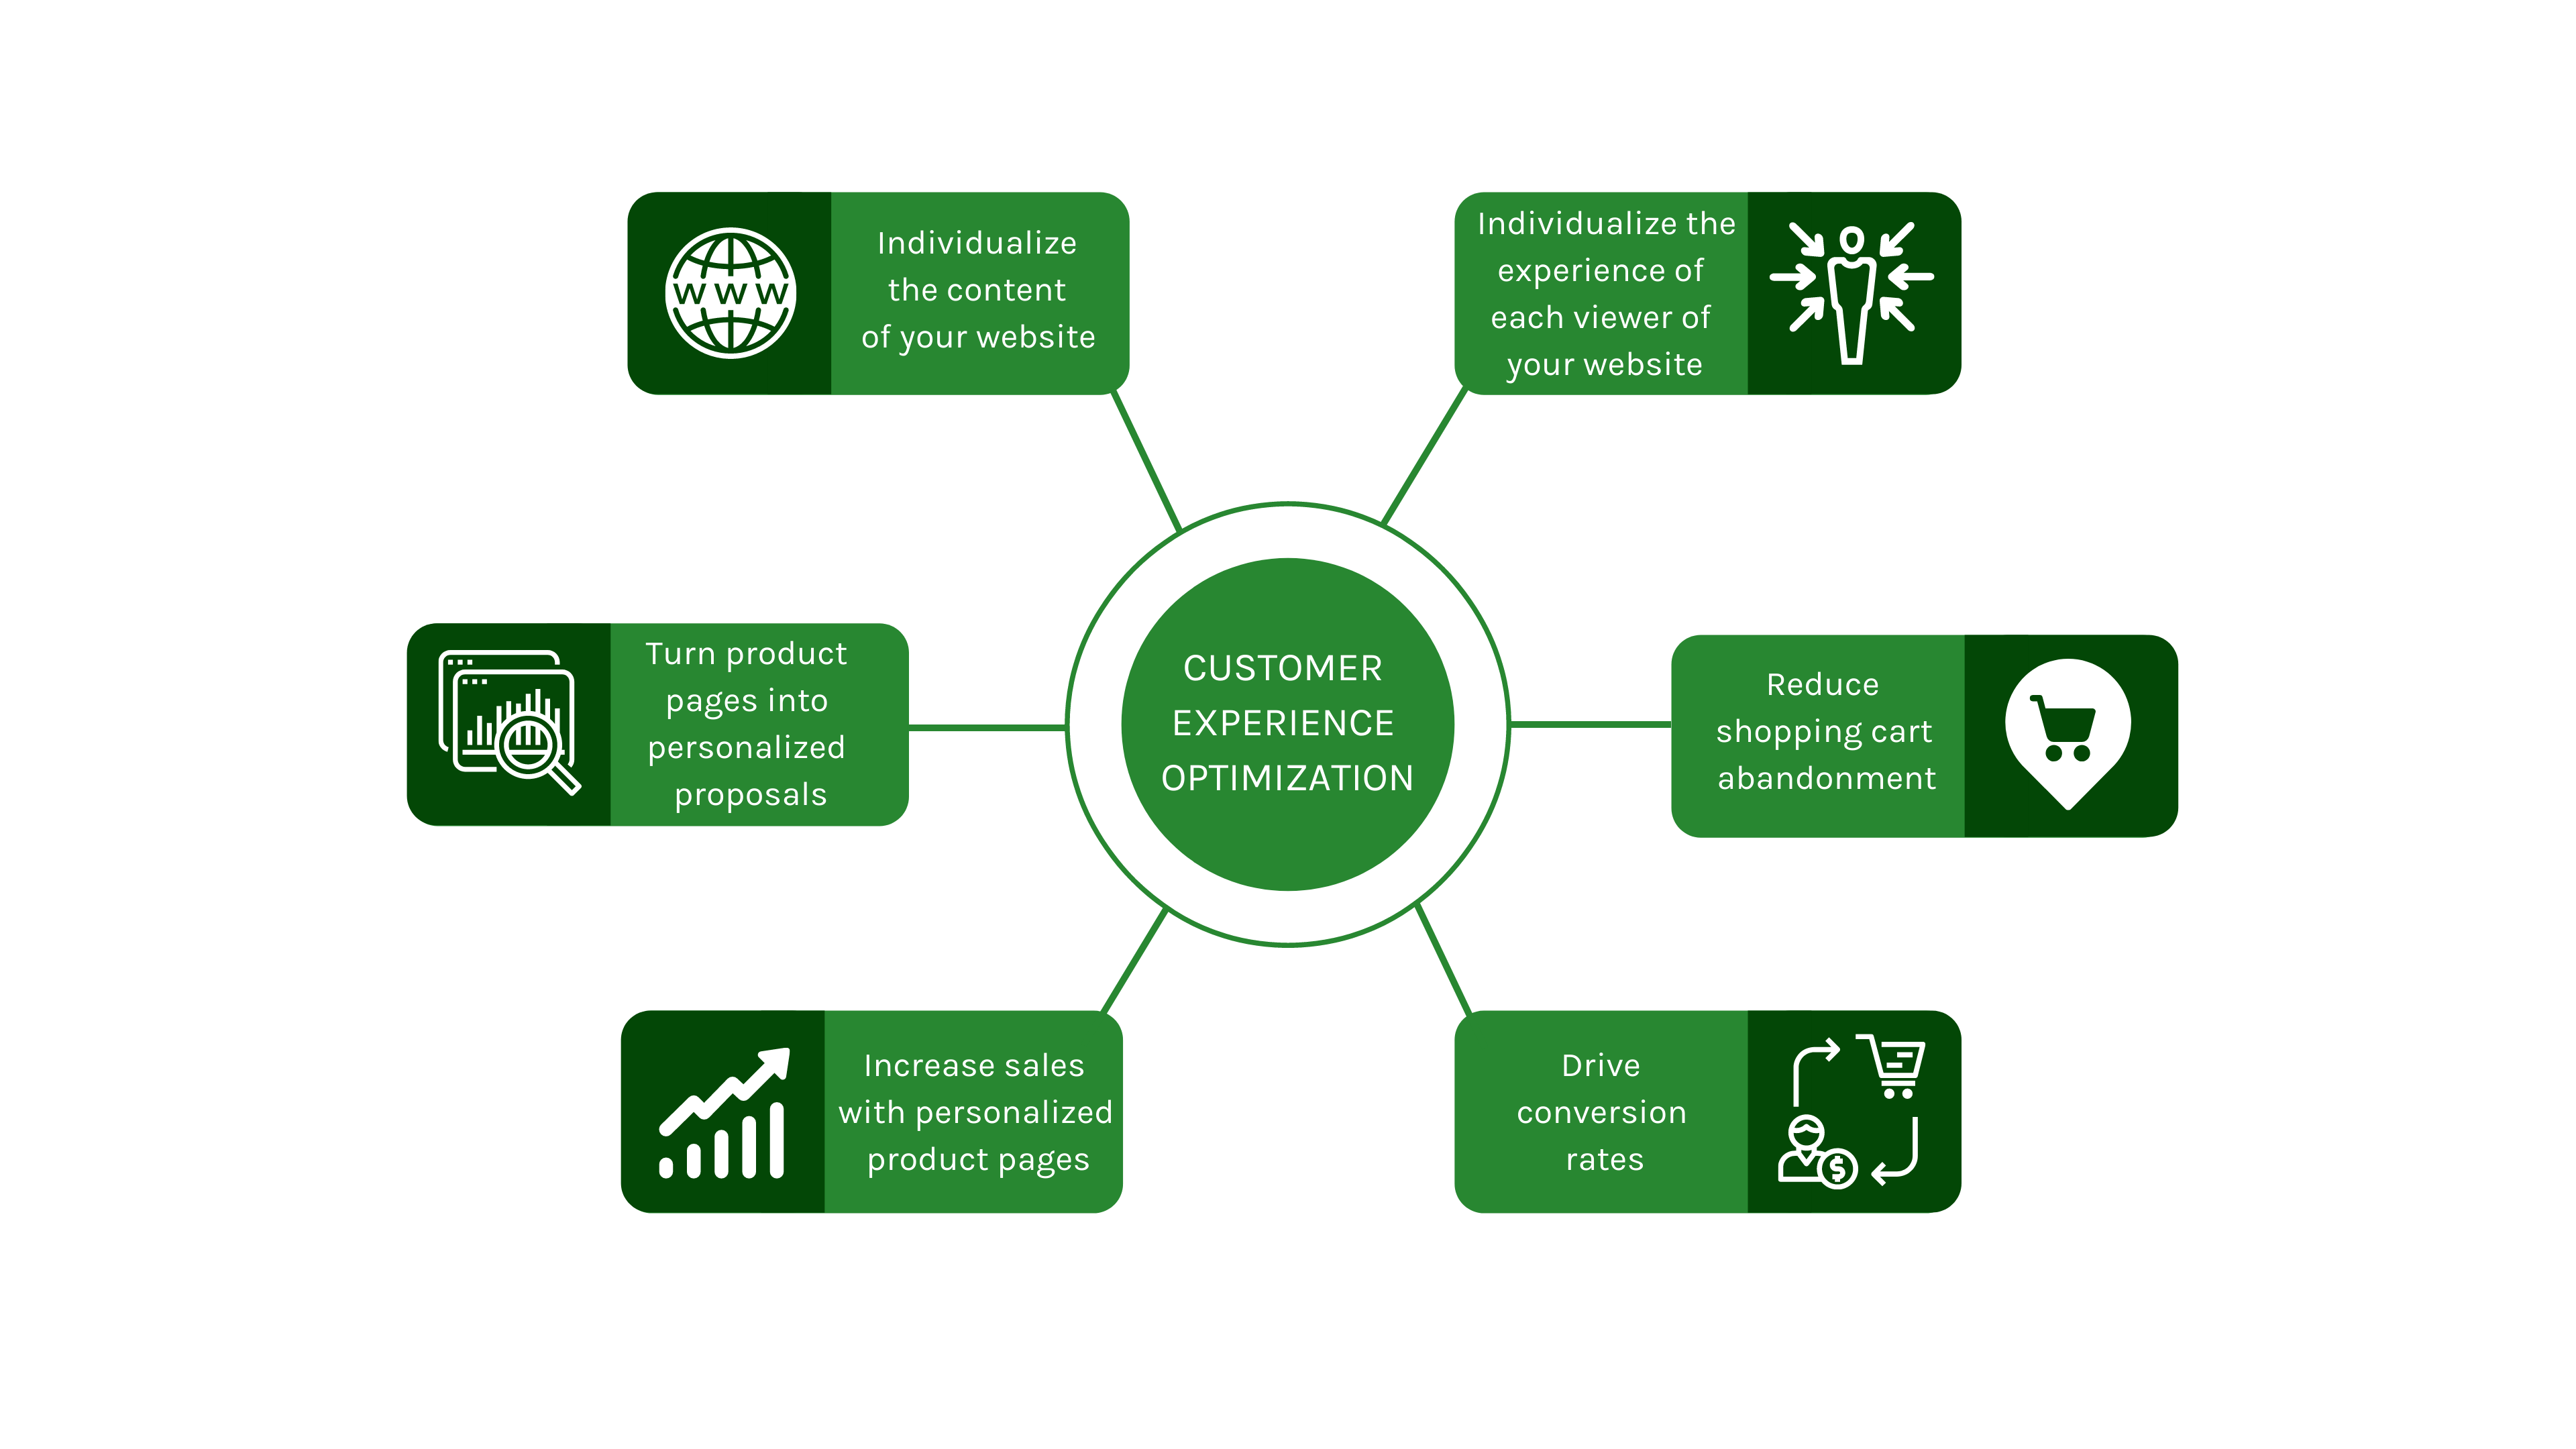 How to achieve effective optimization of the customer experience